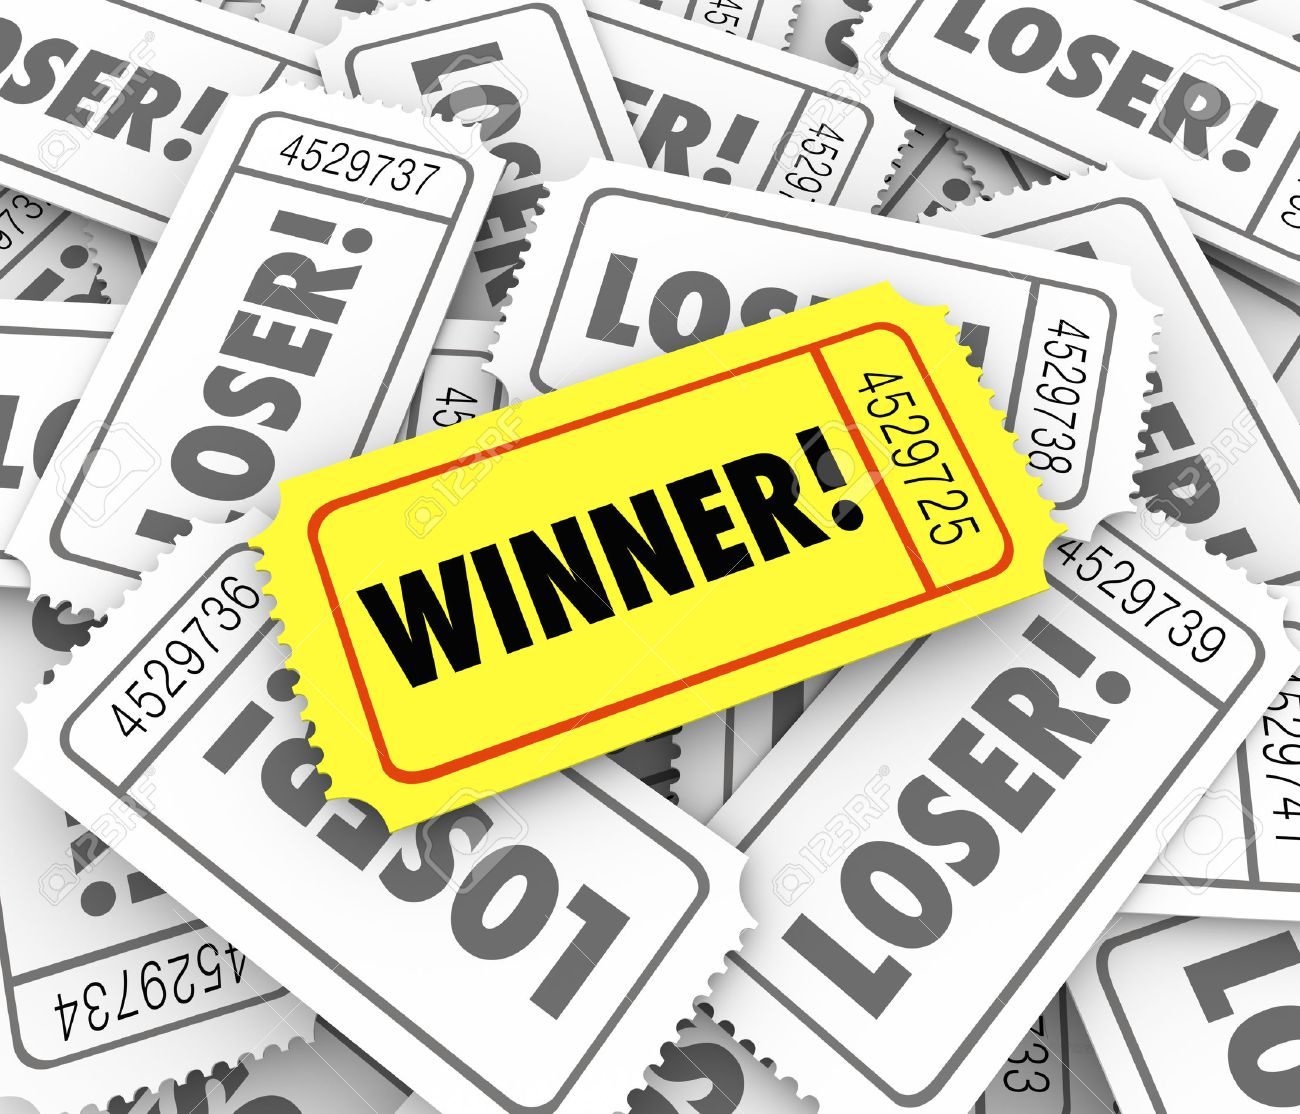 raffle ticket stock photos images royalty raffle ticket raffle ticket winner word on a golden or yellow ticket on a pile of loser